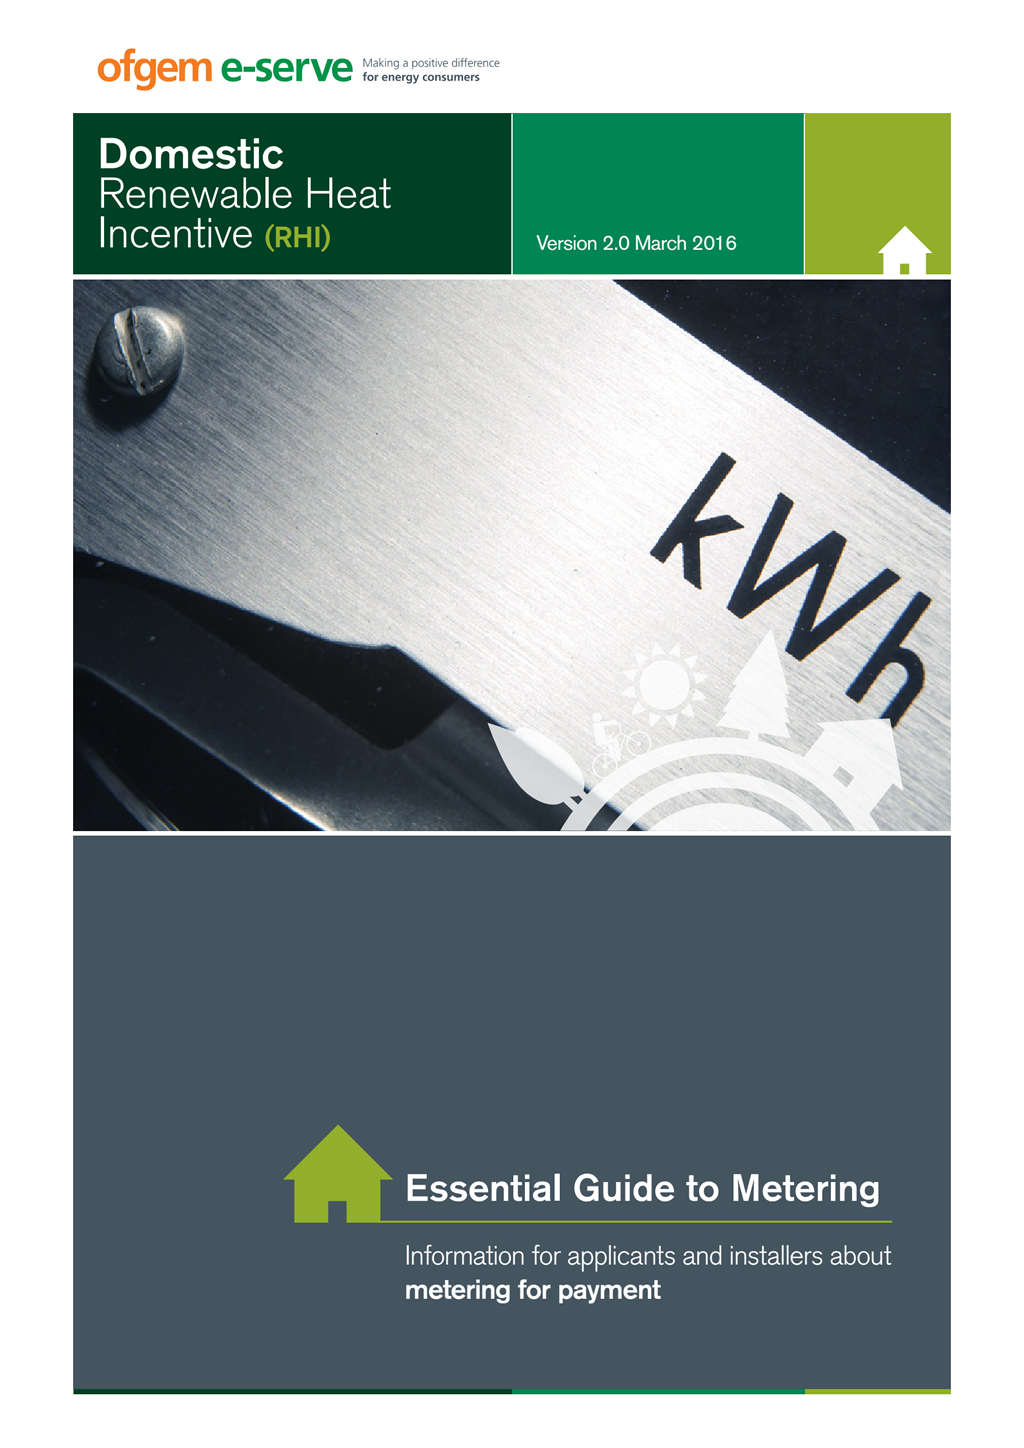 Domestic RHI essential guide to metering March 2016